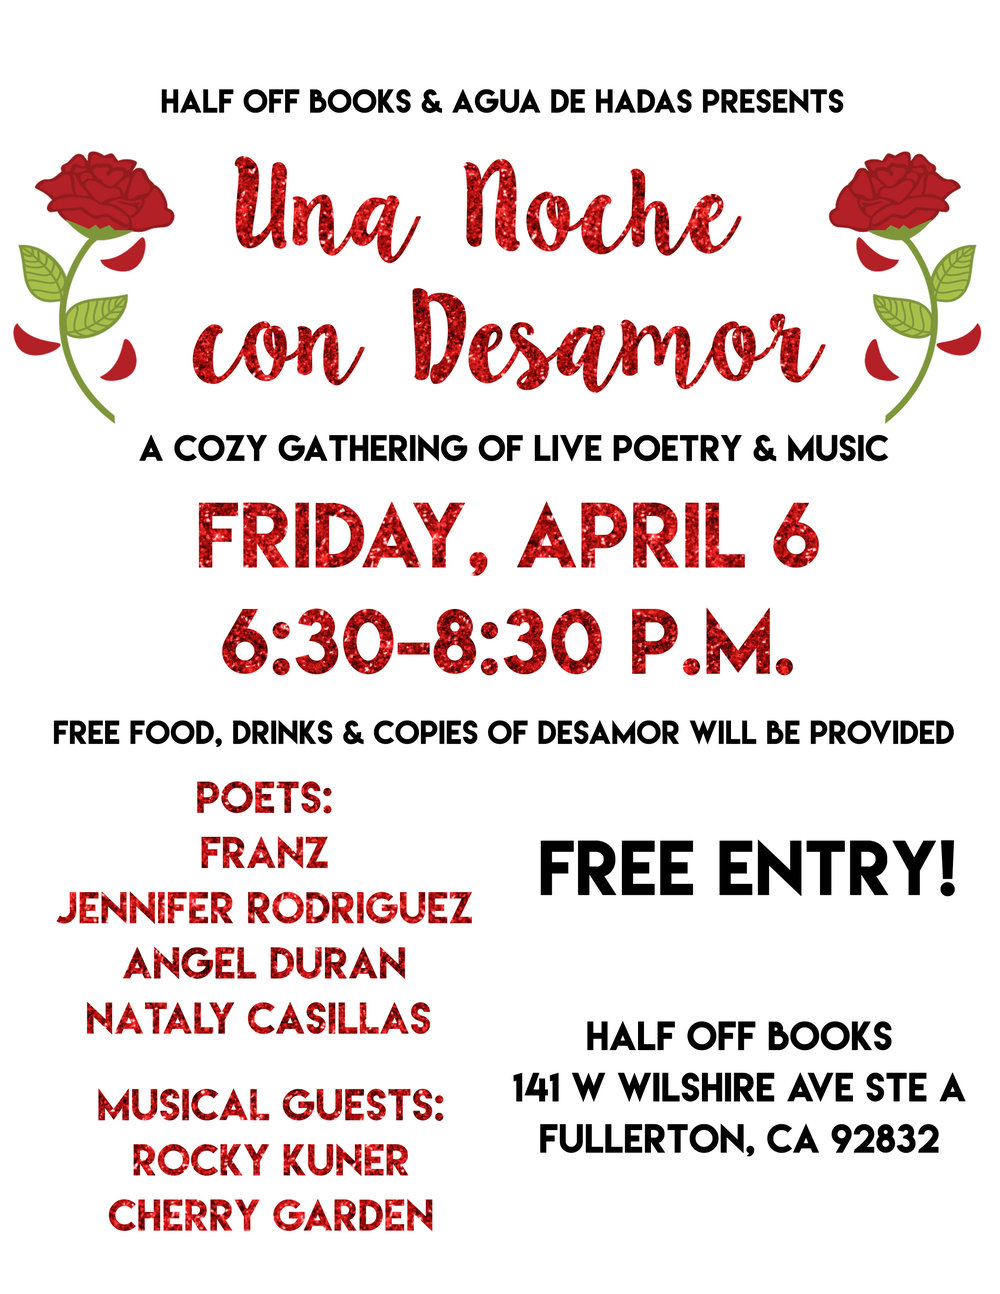 DESAMOR FLYER_Final_Spanish.jpg